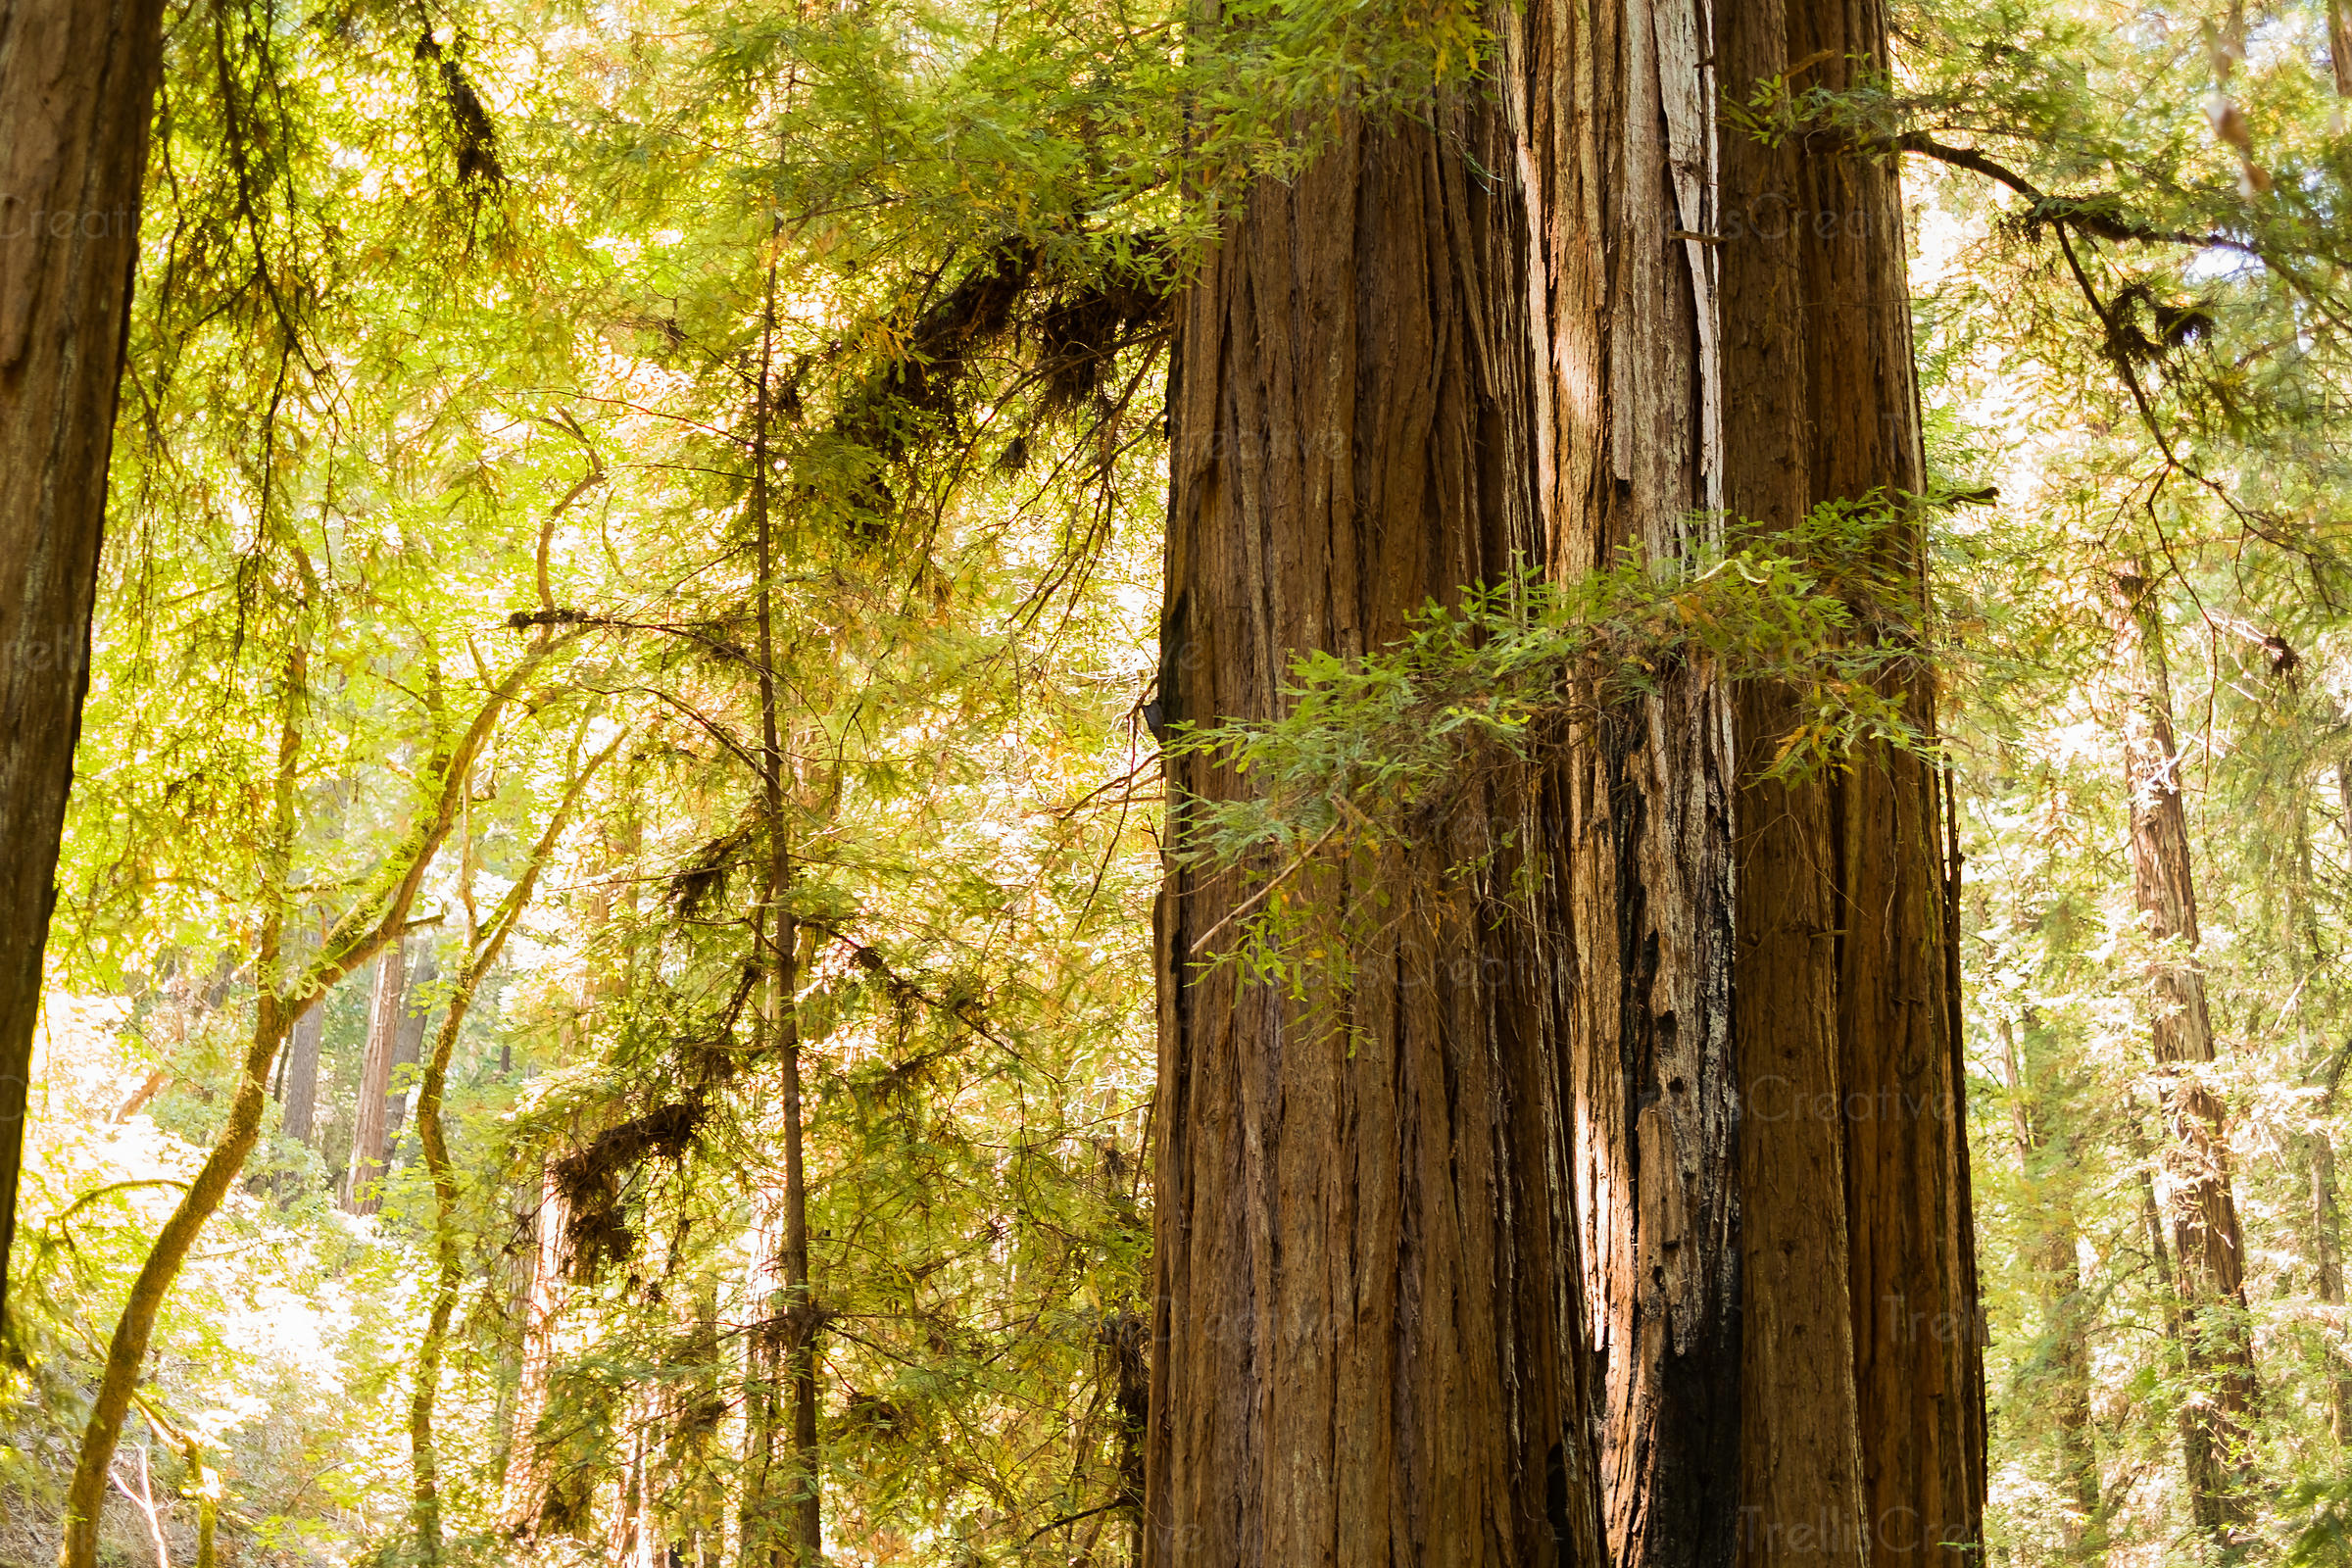 redwood-trees-sunlight-2798